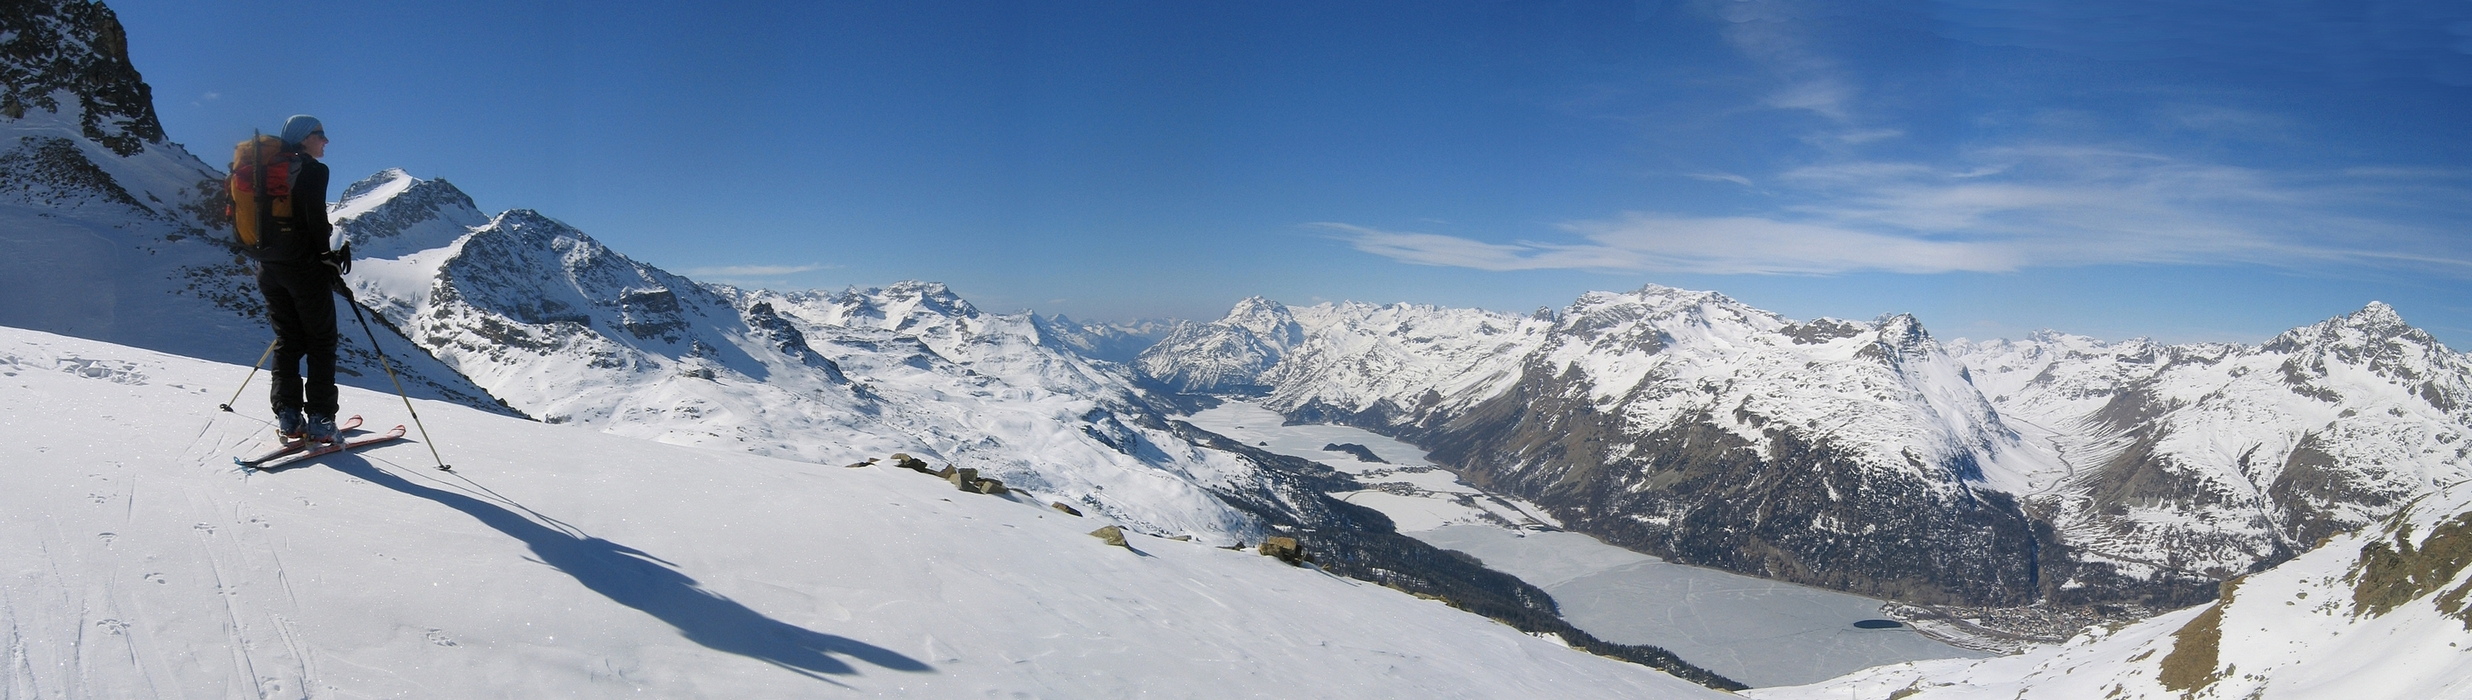 Piz Surlej - Piz San Gian Bernina Switzerland panorama 29